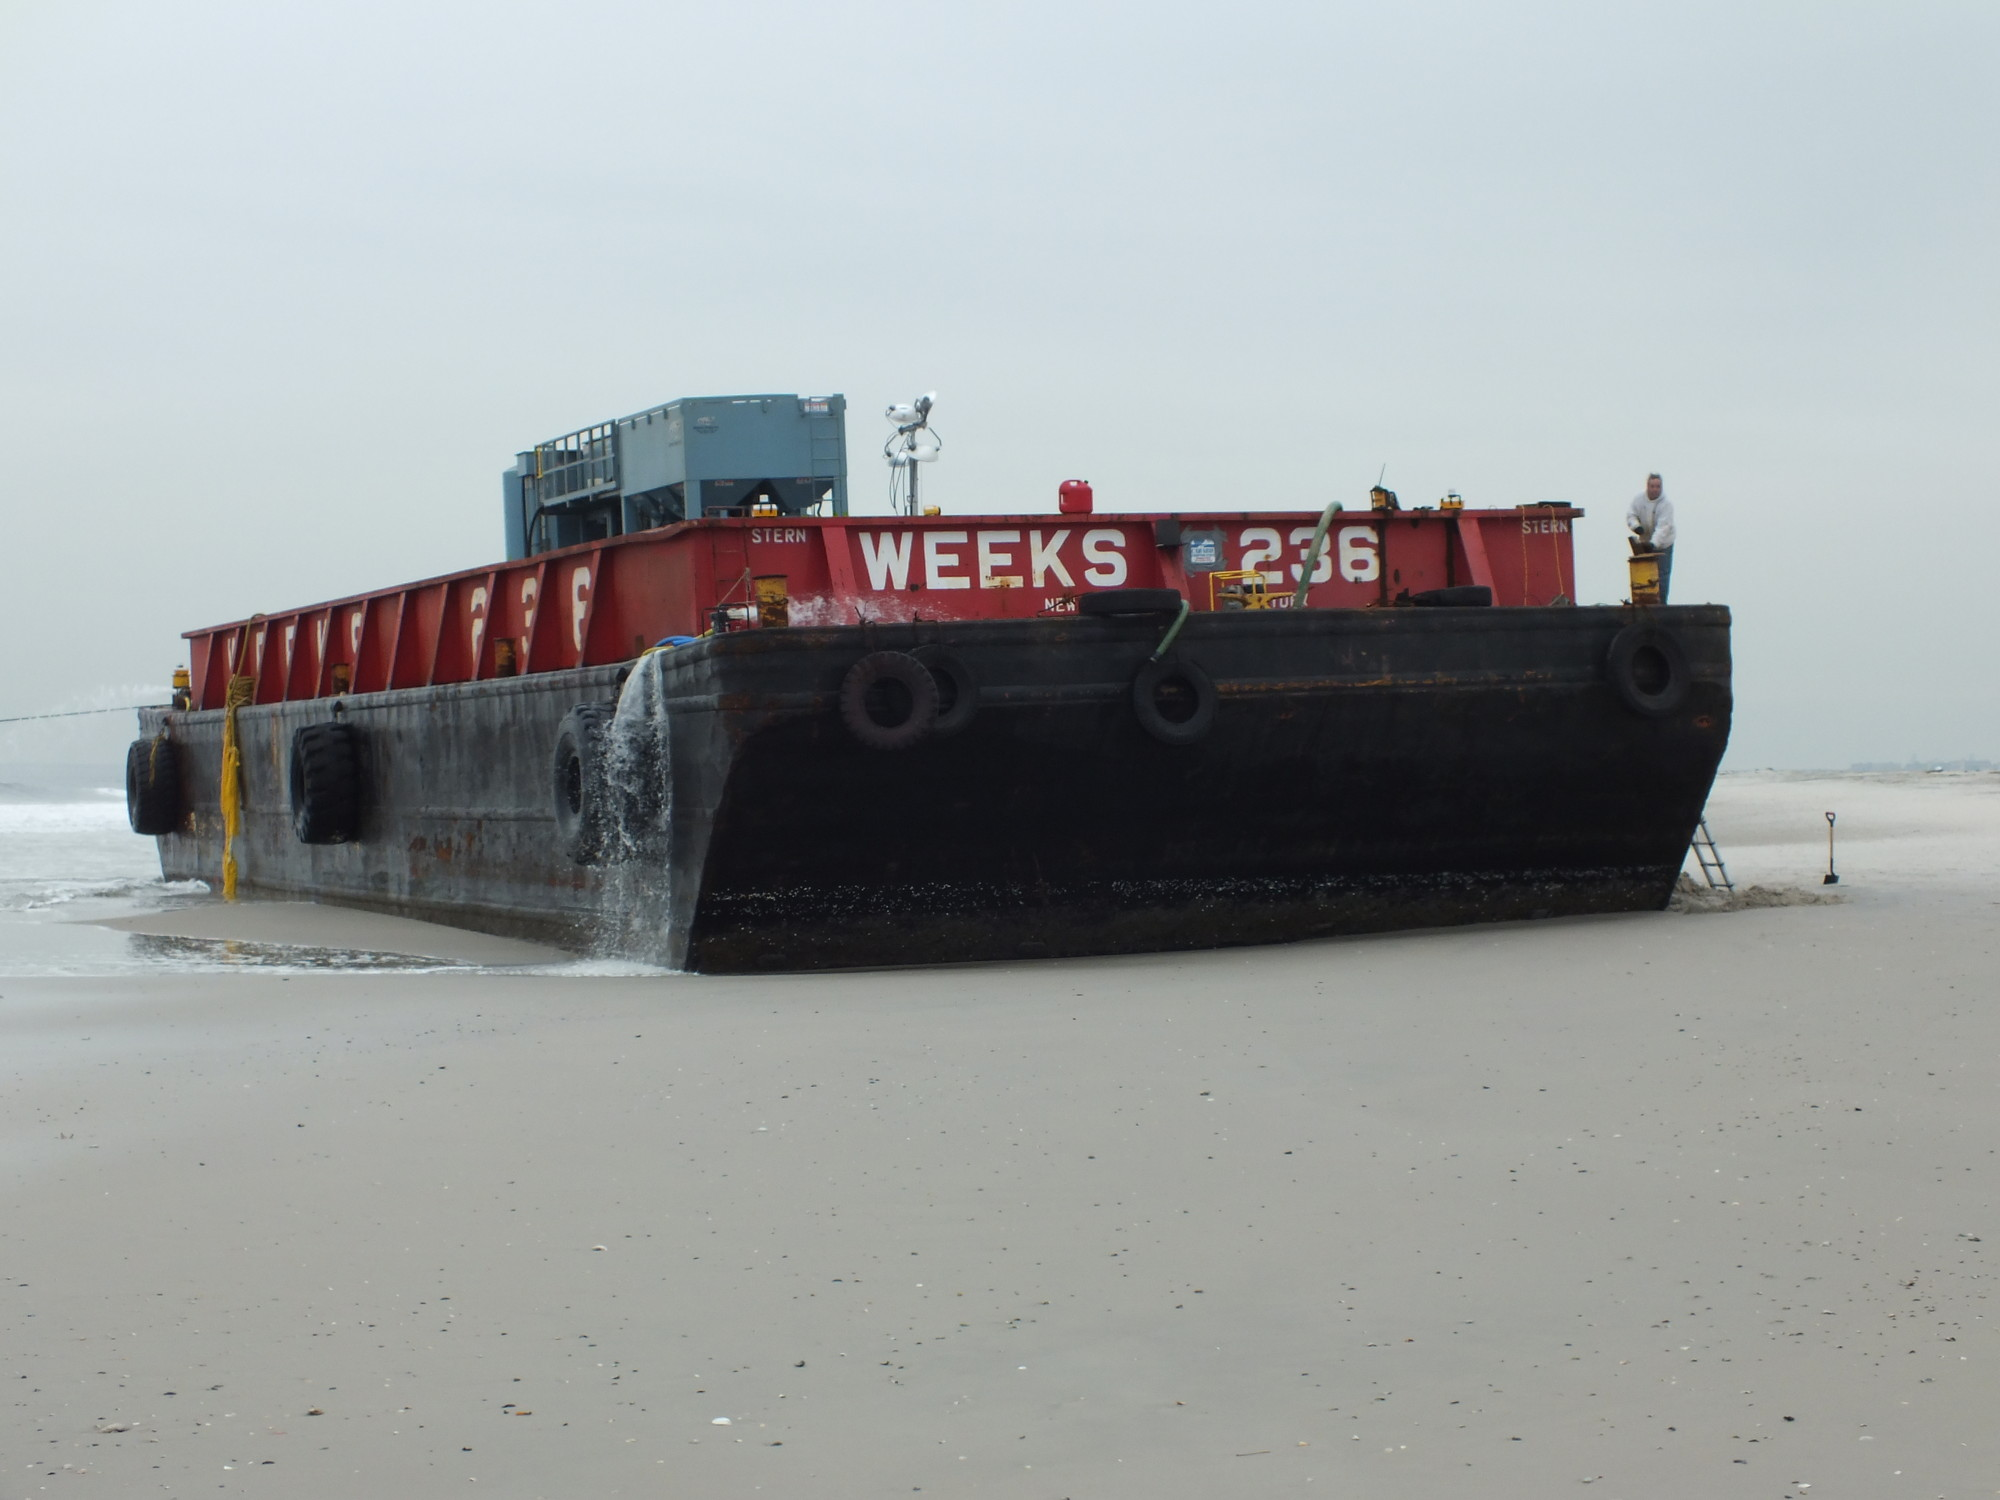 The 250-on barge that ran aground on Silver Point County Park in Atlantic Beach was being pulled back into the water by two tugboats on Thursday.